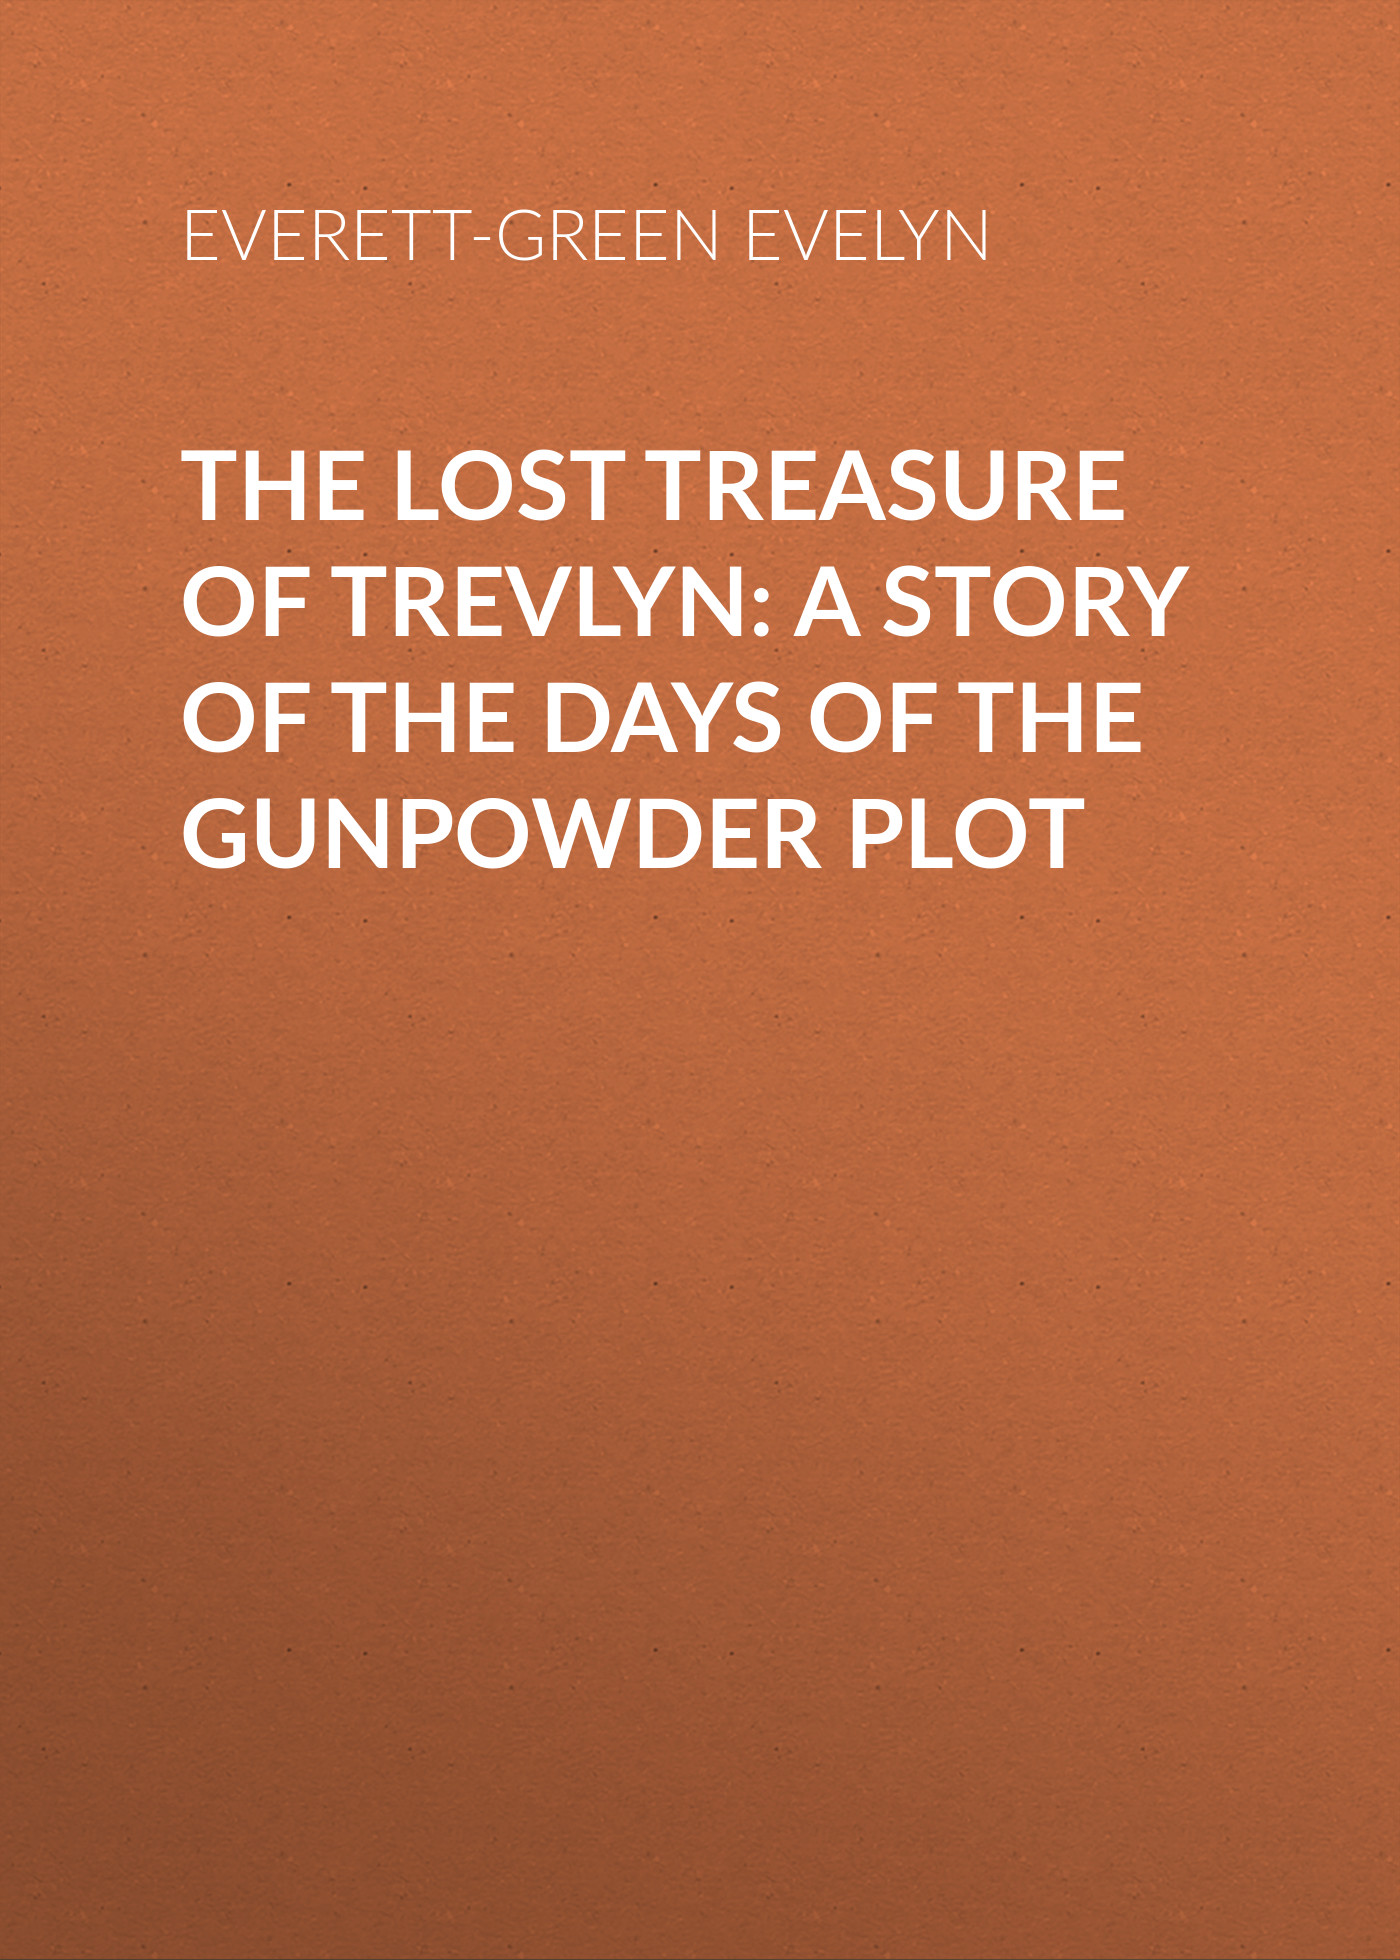 Everett-Green Evelyn The Lost Treasure of Trevlyn: A Story of the Days of the Gunpowder Plot gardiner samuel rawson what gunpowder plot was